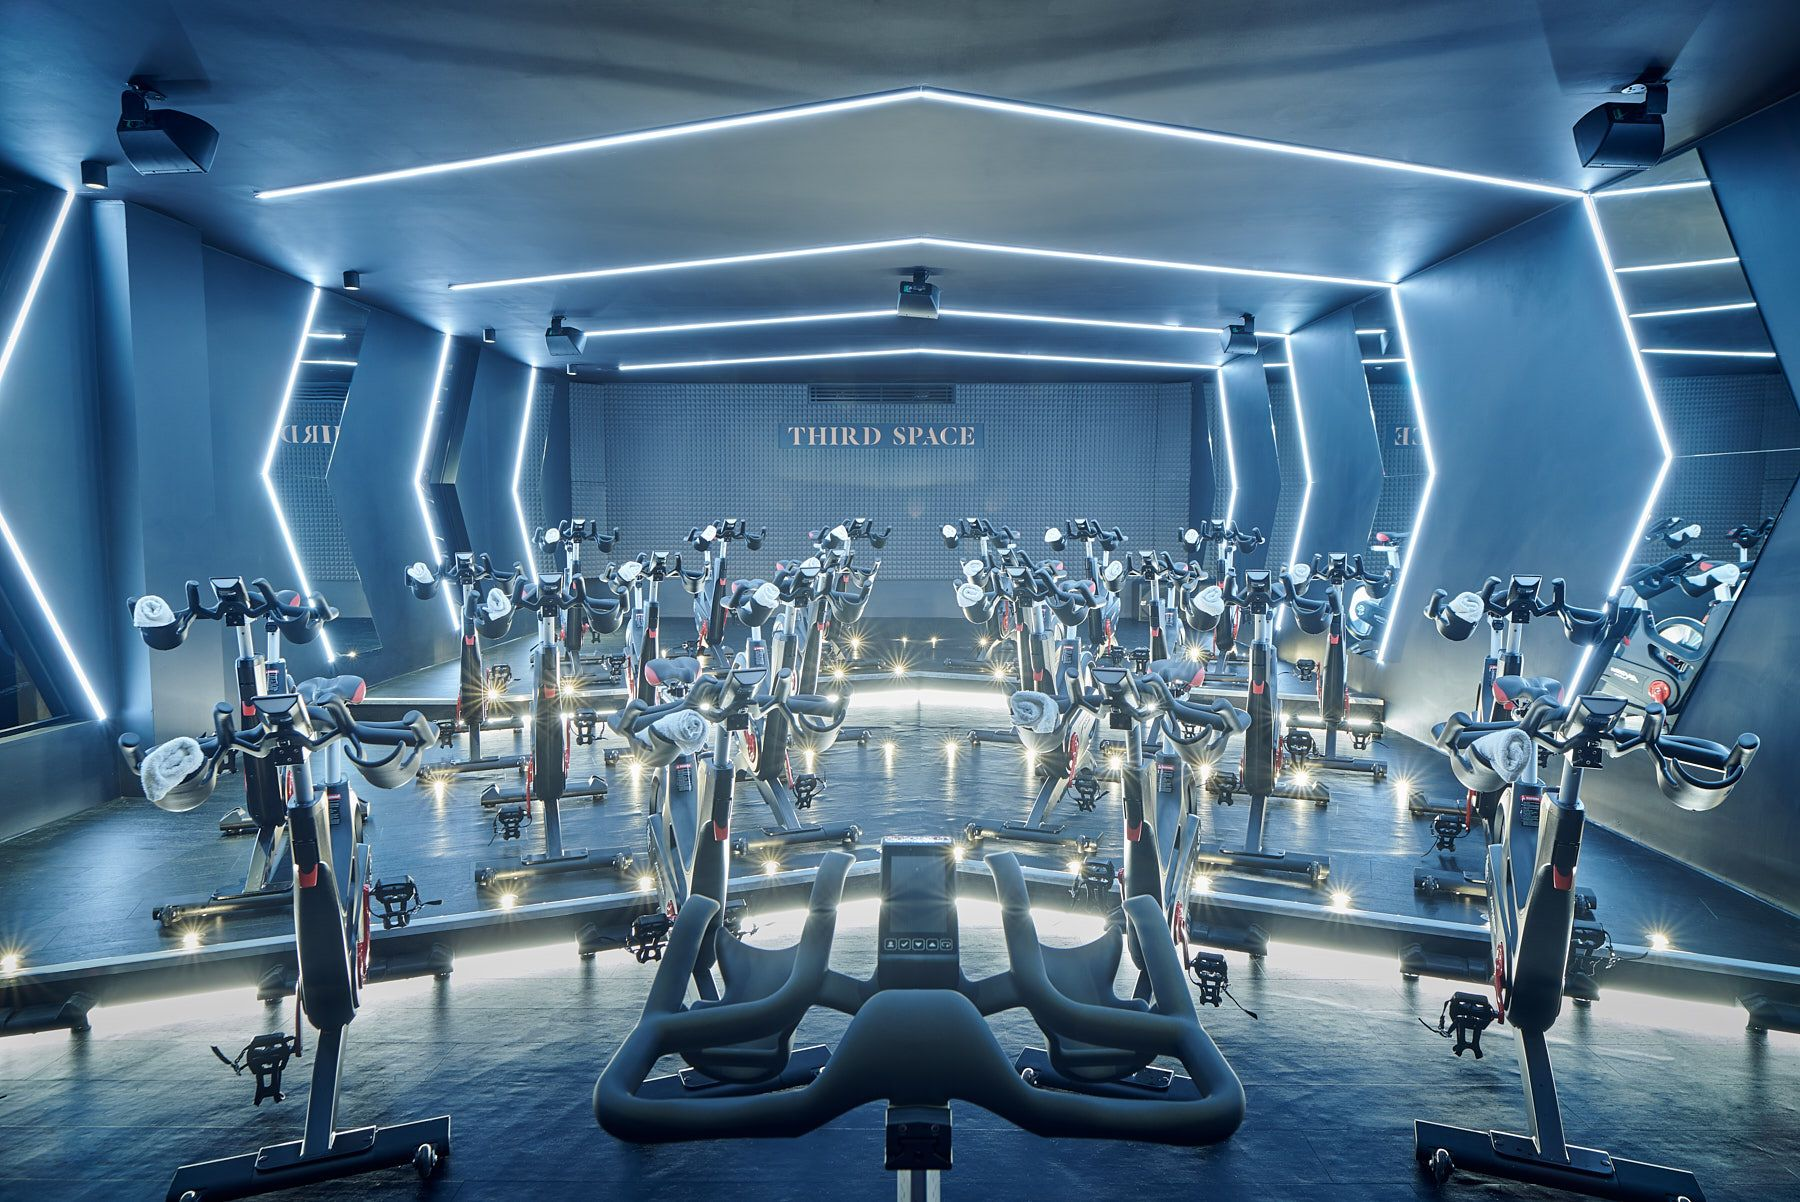 Canary Wharf Group Signs Up High End Health Club Canary Wharf Group Has Www Primeresi Com Luxuryproperty Primeresidential Space City Gym Interior Luxury Gym